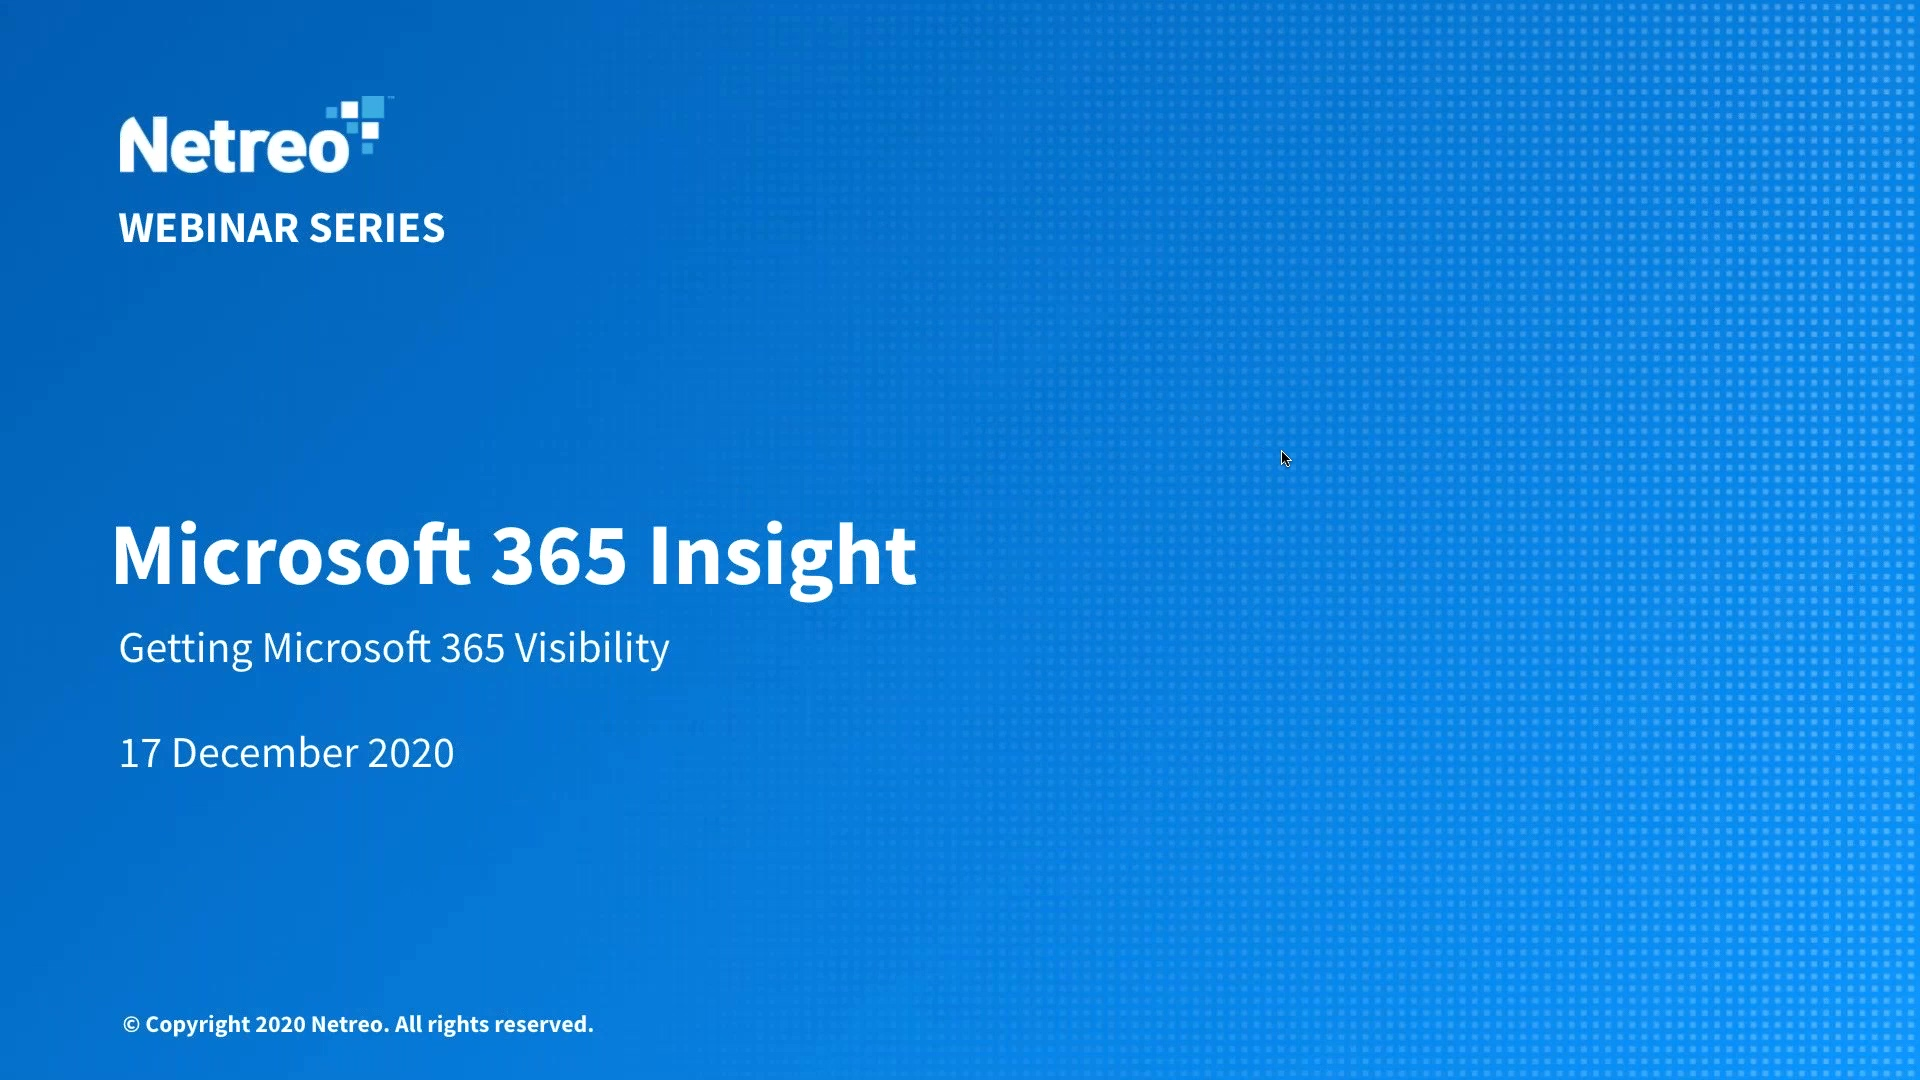 Driving Real-world Value with Netreos Microsoft 365 Insight